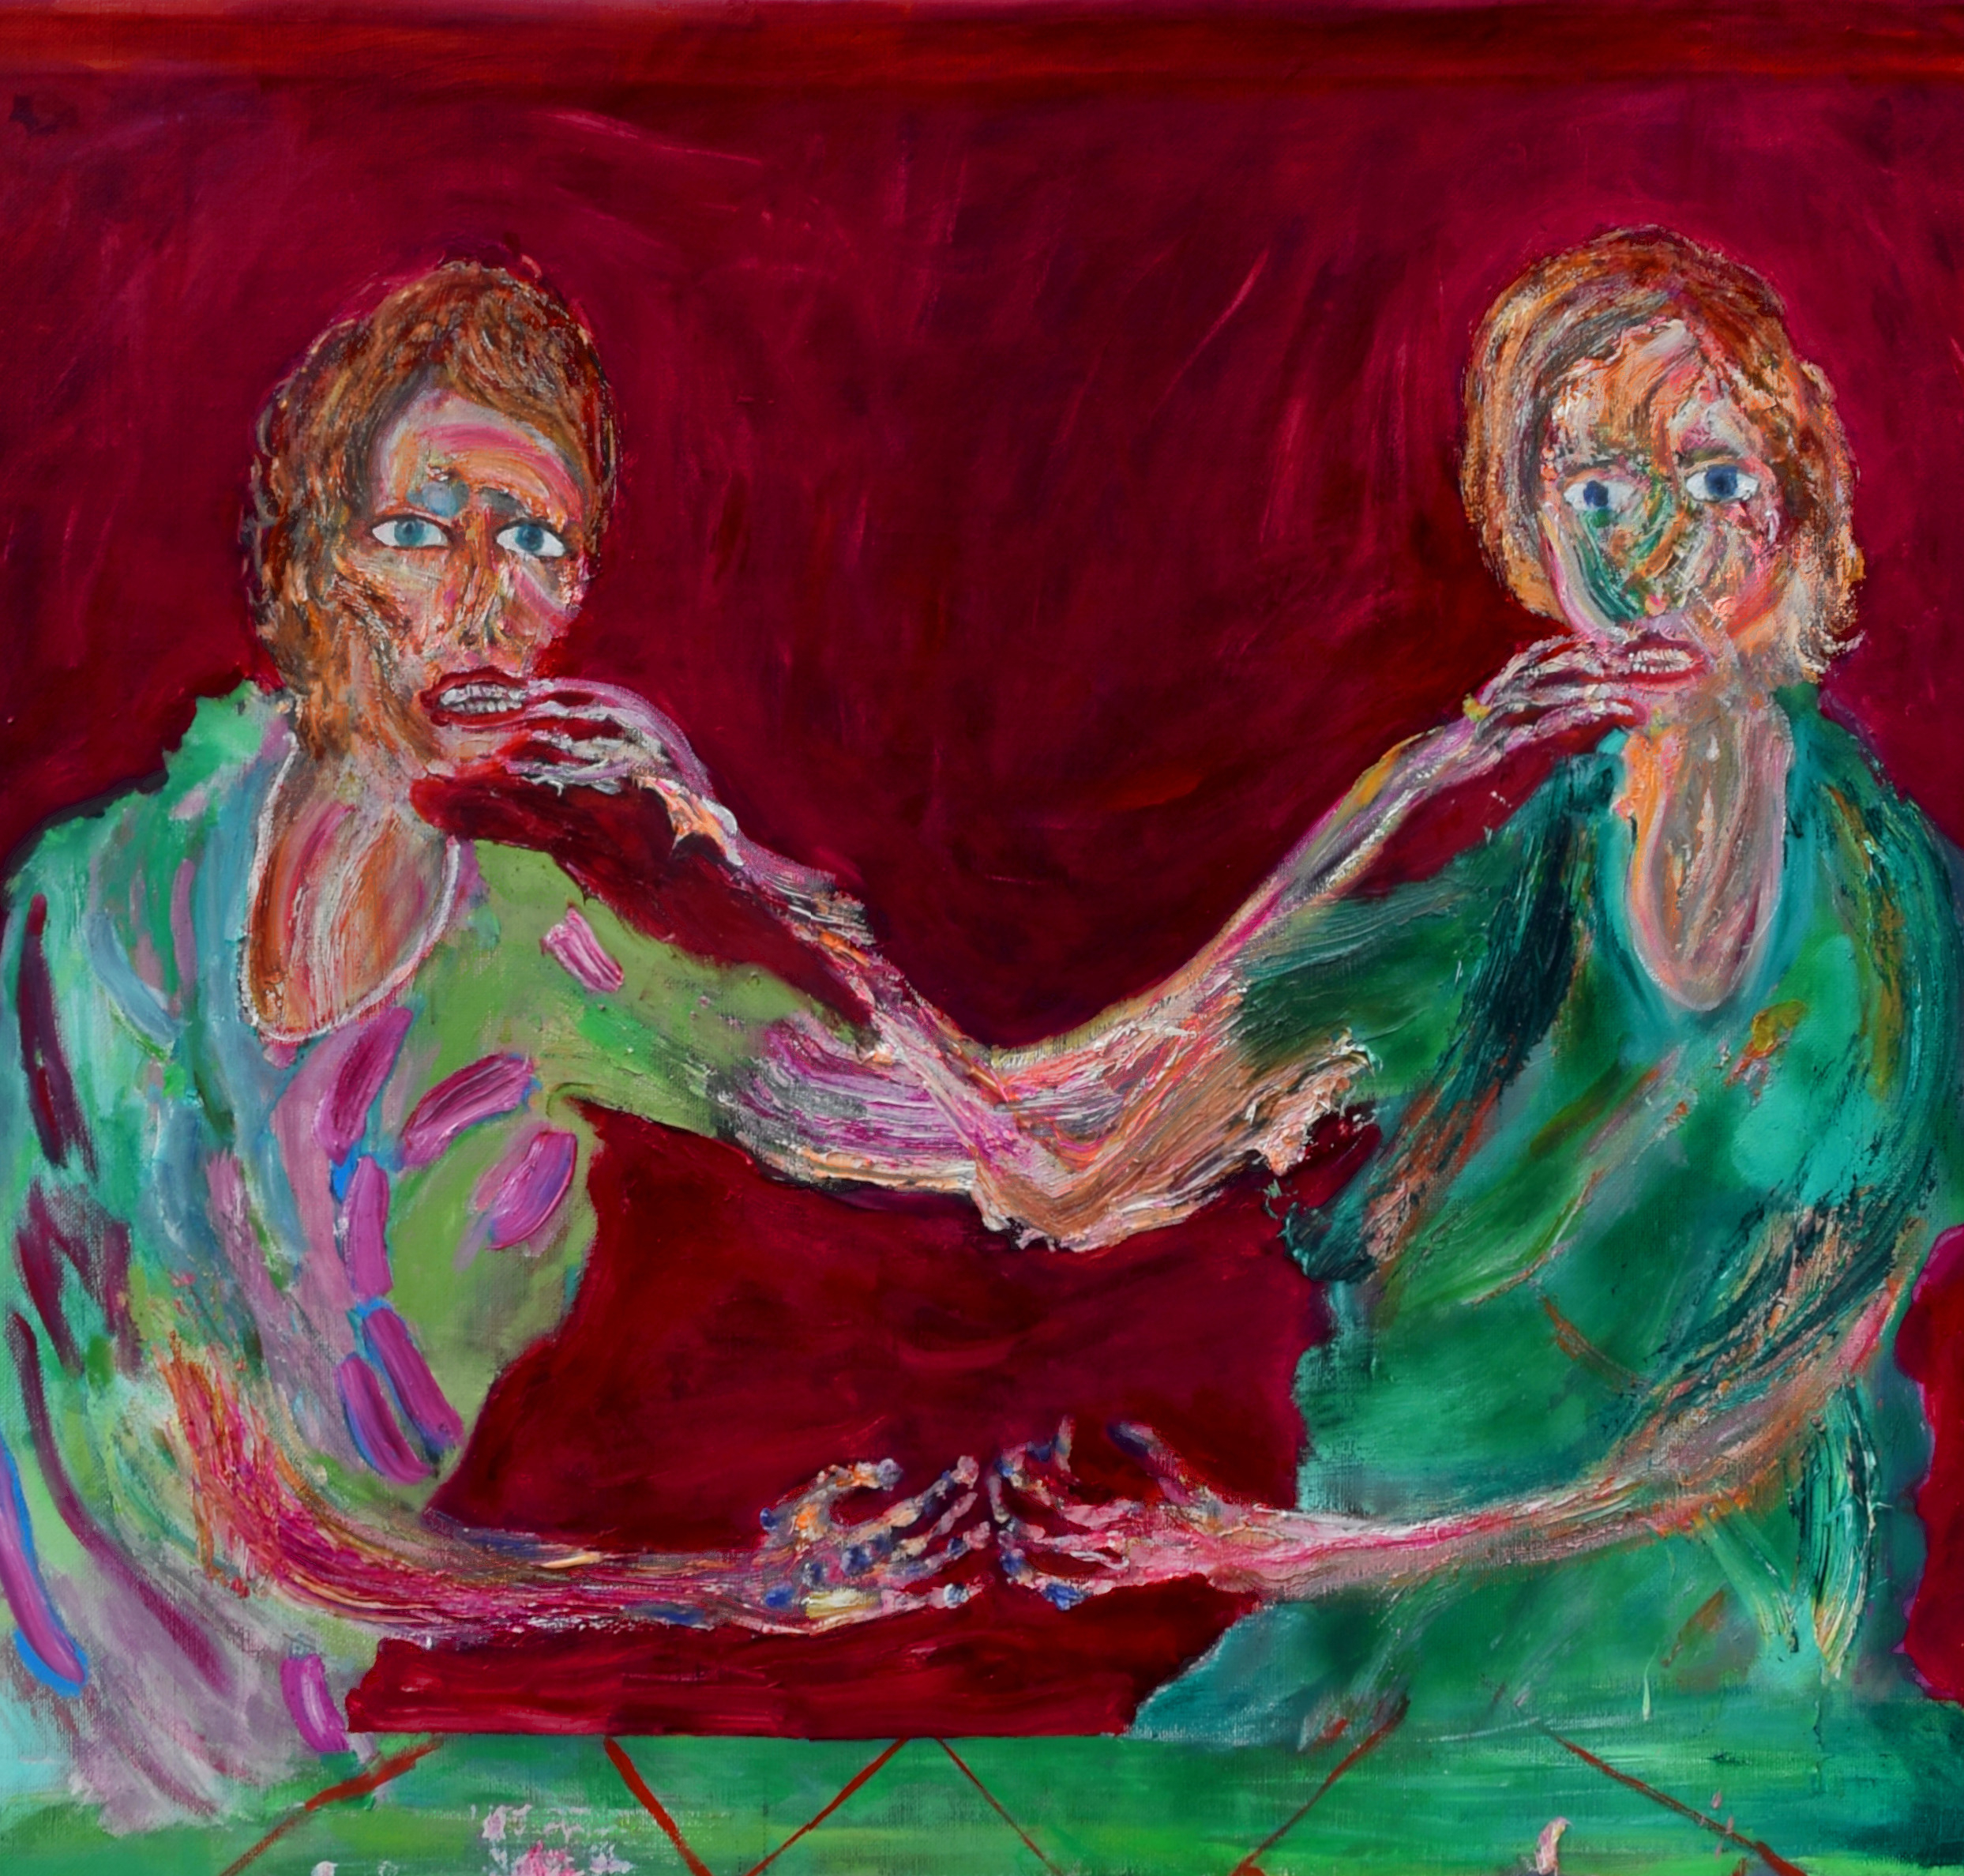 """Towards a Kinder Society: """"Fragile Together"""" by Andrew Litten at JD Malat Gallery, London"""